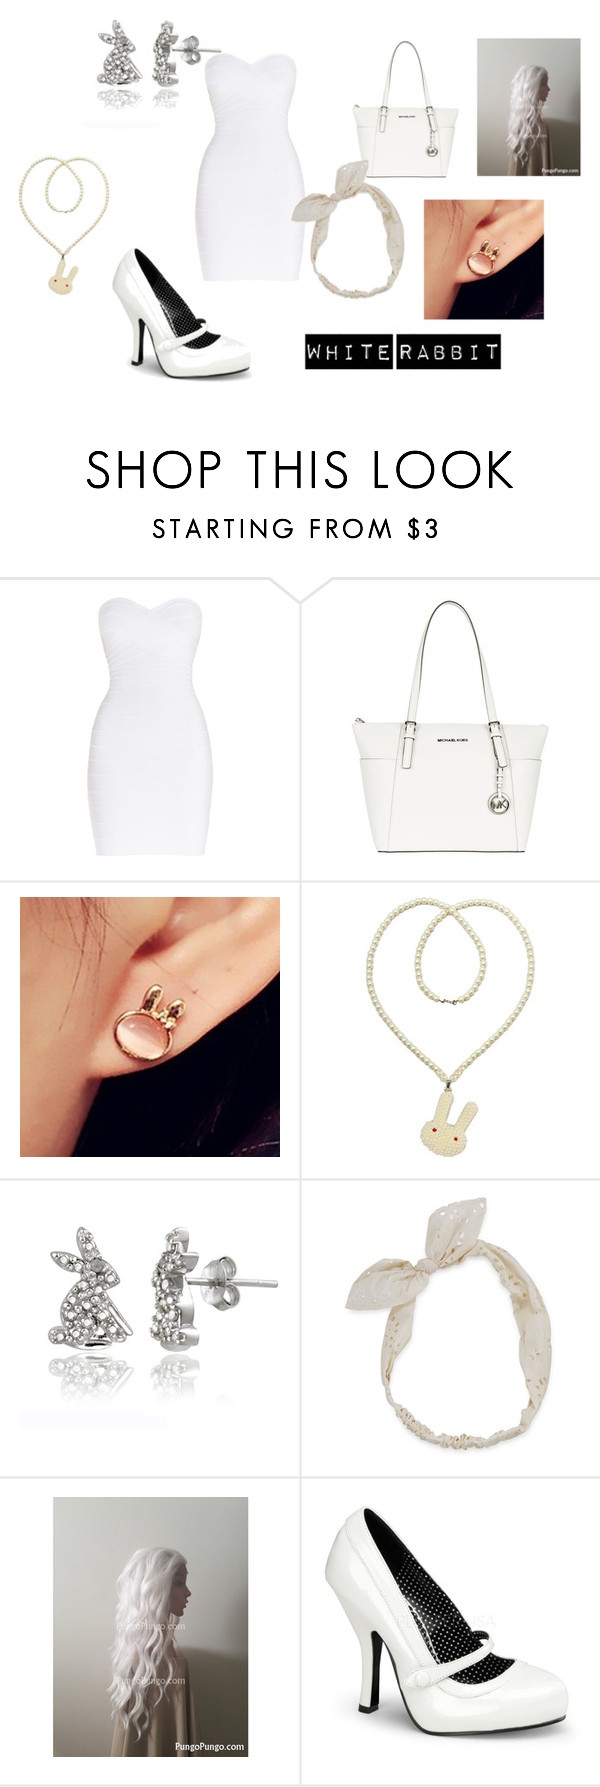 """""""White Rabbit"""" by maddie-hatter23 ❤ liked on Polyvore featuring Hervé Léger, MICHAEL Michael Kors, Cheermo, Kate Marie, DB Designs, Carole and Pinup Couture"""